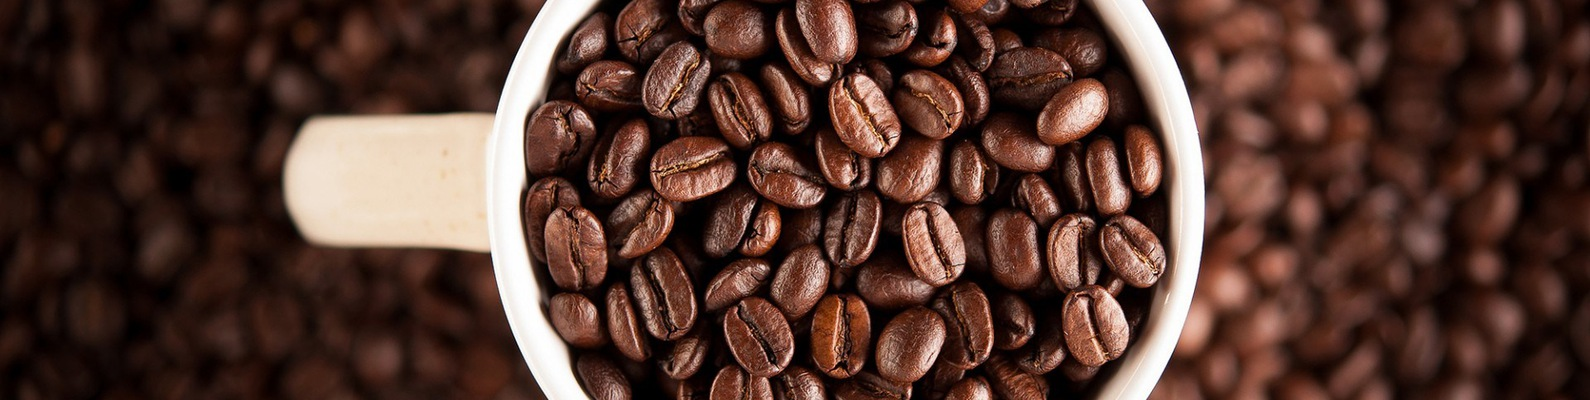 Arabica coffee plant for sale